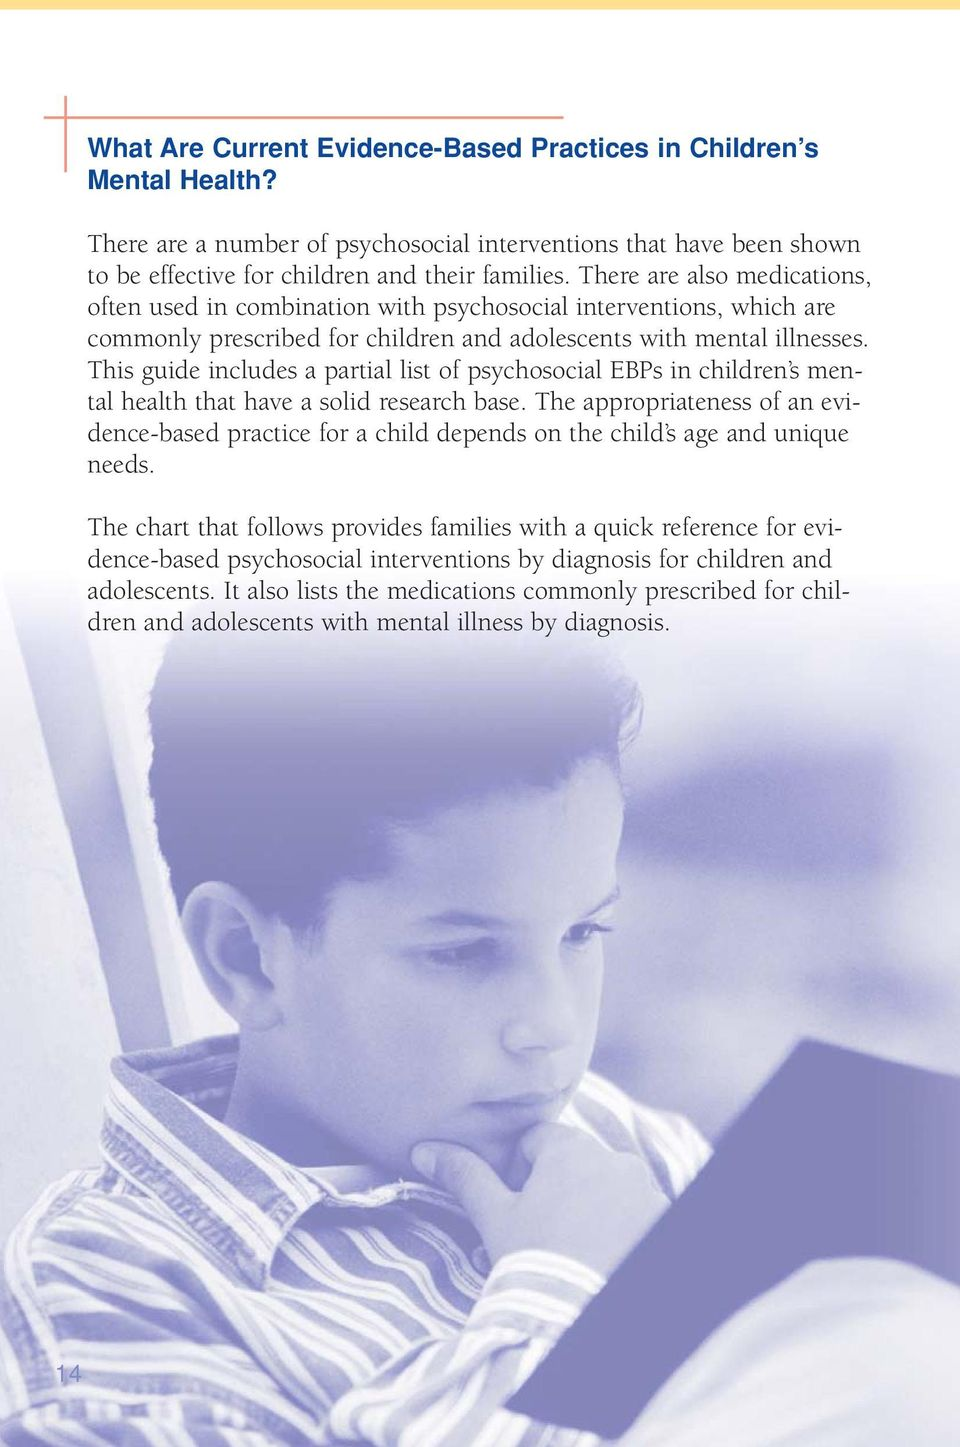 This guide includes a partial list of psychosocial EBPs in children s mental health that have a solid research base.